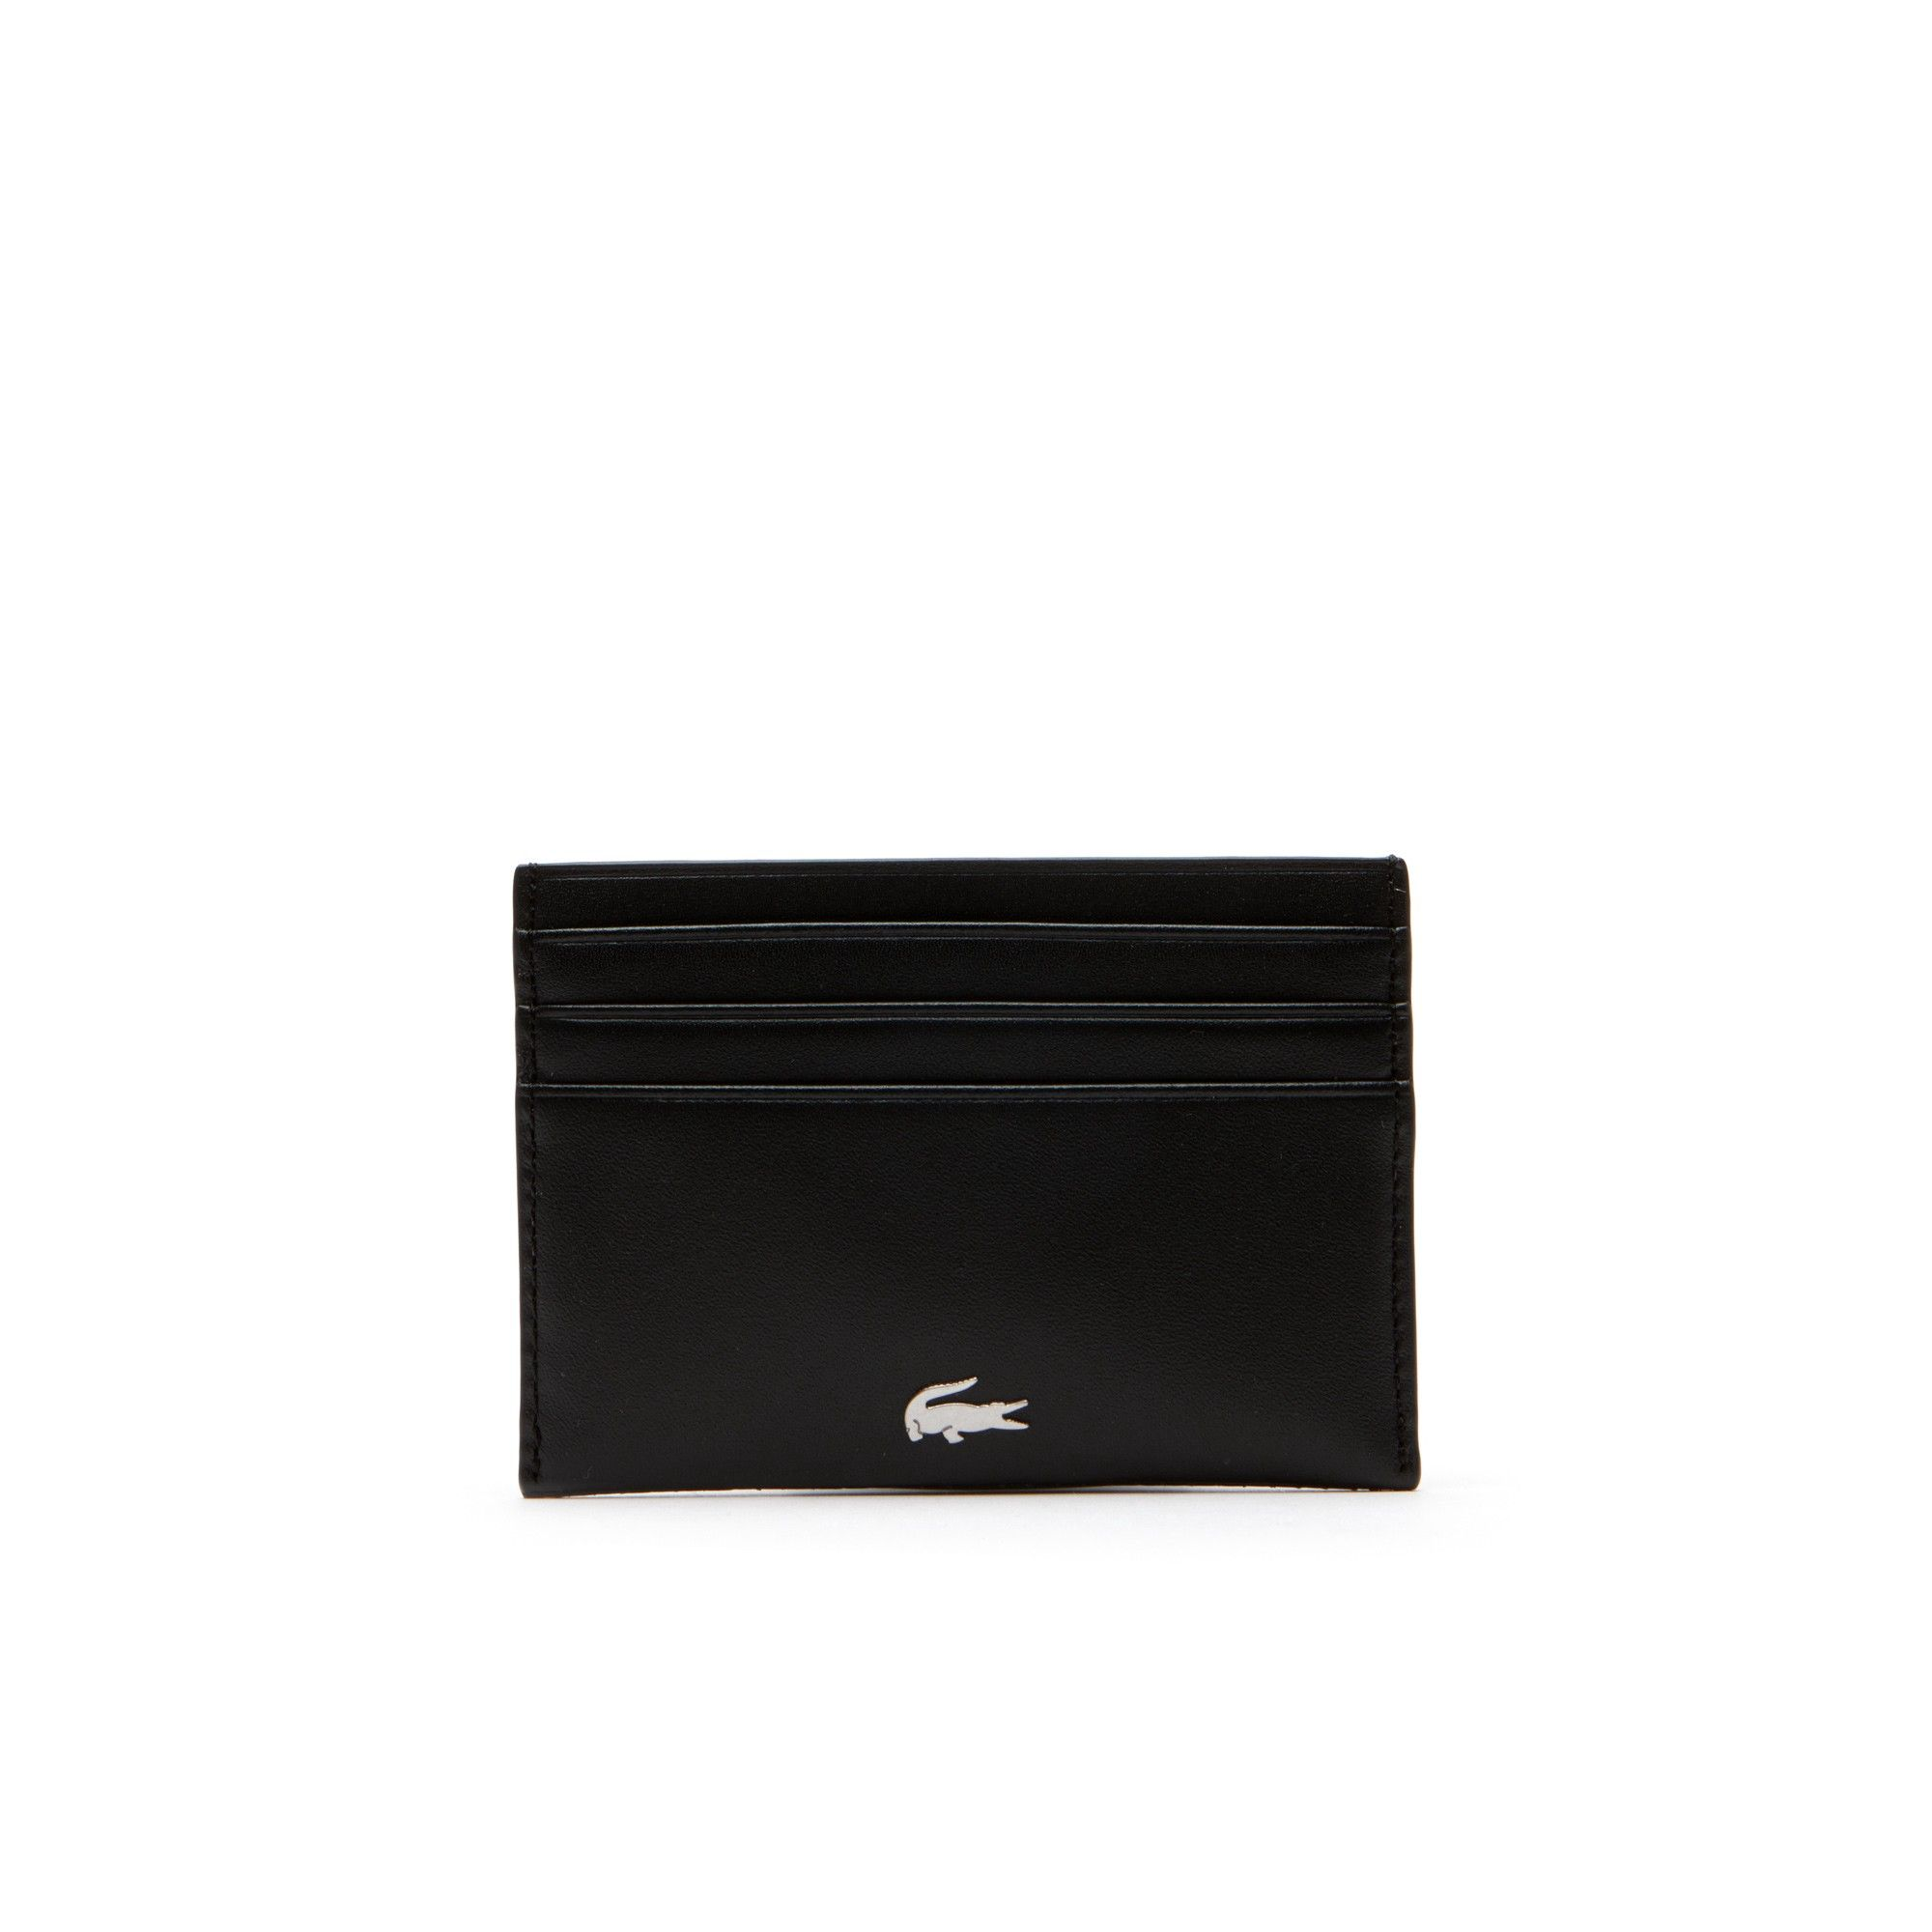 3f6873b0ac3b LACOSTE Men s Fitzgerald Colorblock Leather 6 Card Holder.  lacoste ...